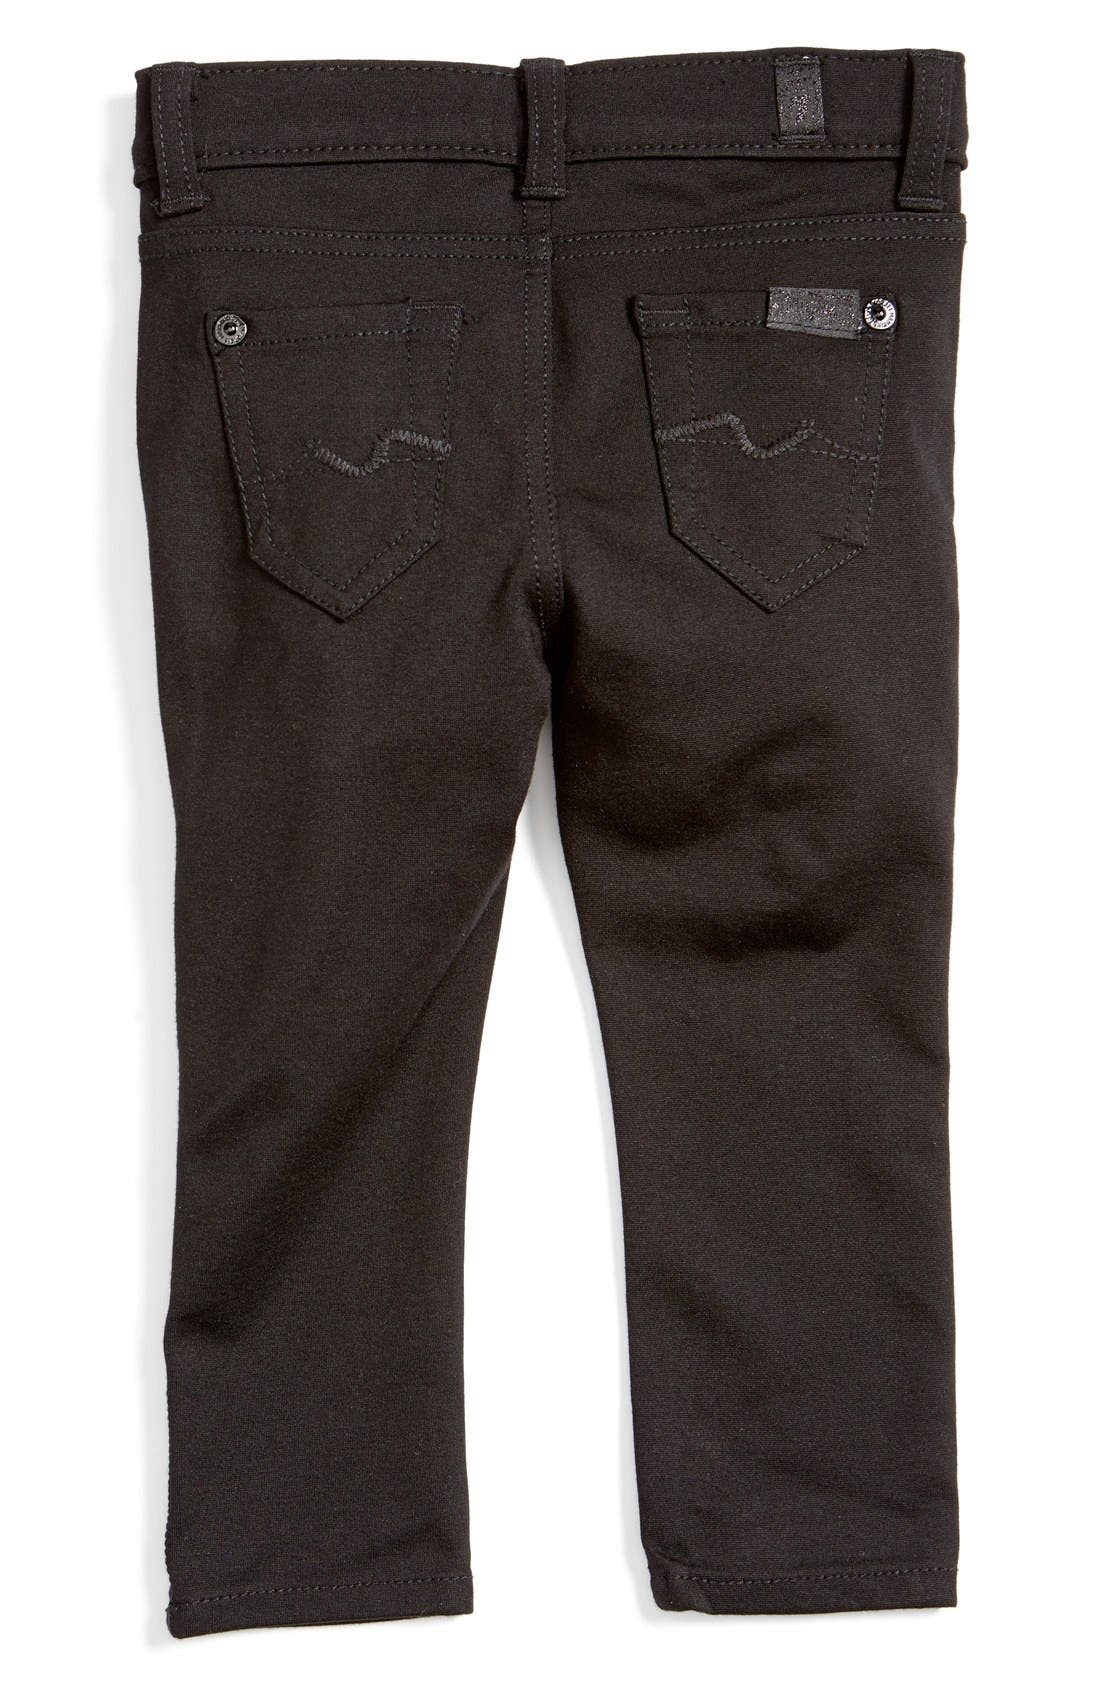 Skinny Fit Jeans,                             Alternate thumbnail 2, color,